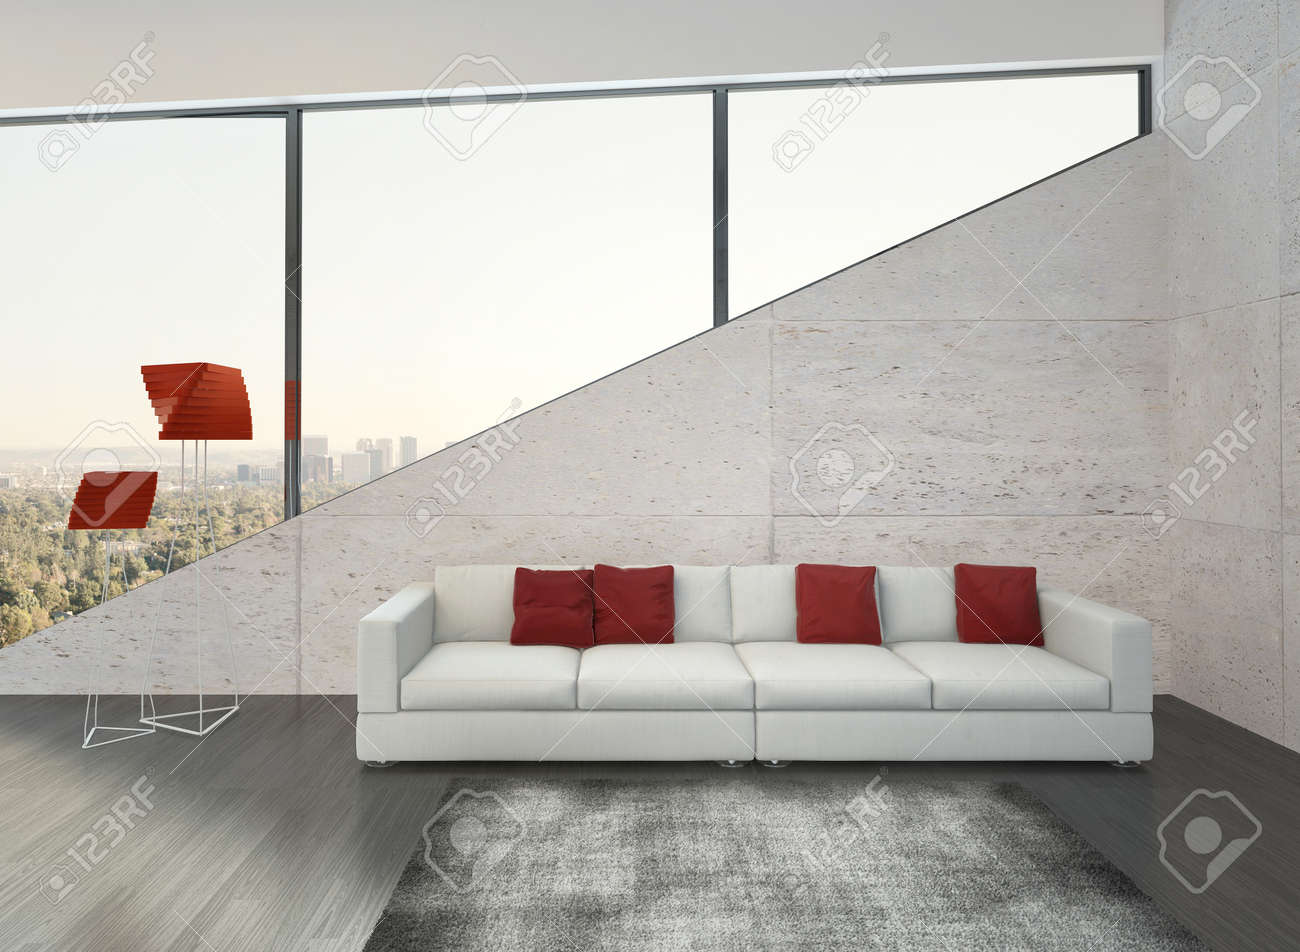 Modern Living Room Interior With White Couch With Red Pillows Stock ...